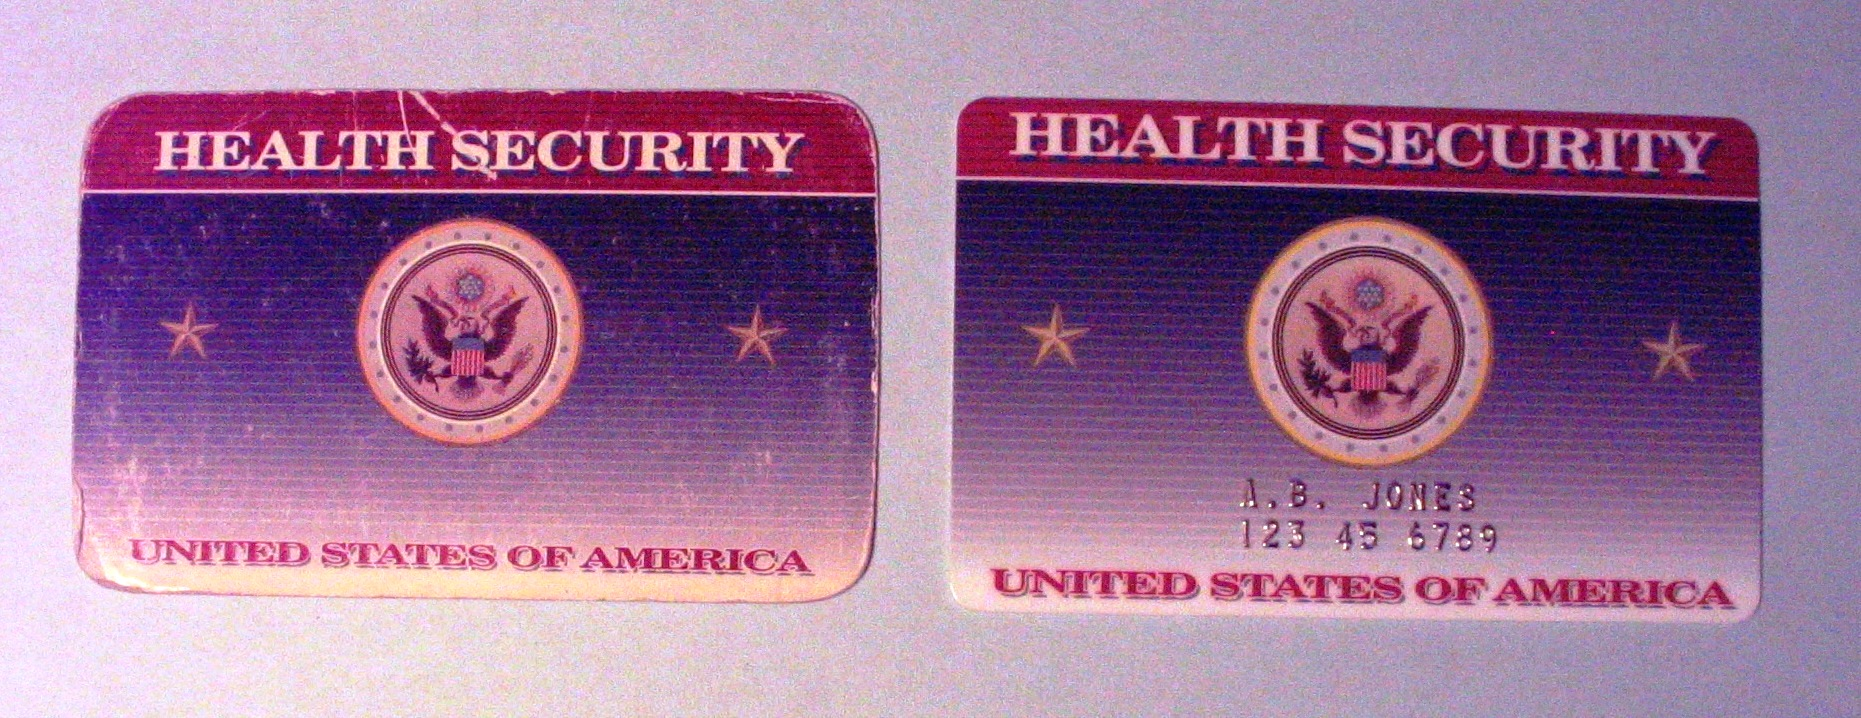 Health Security Cards - Front (1993)